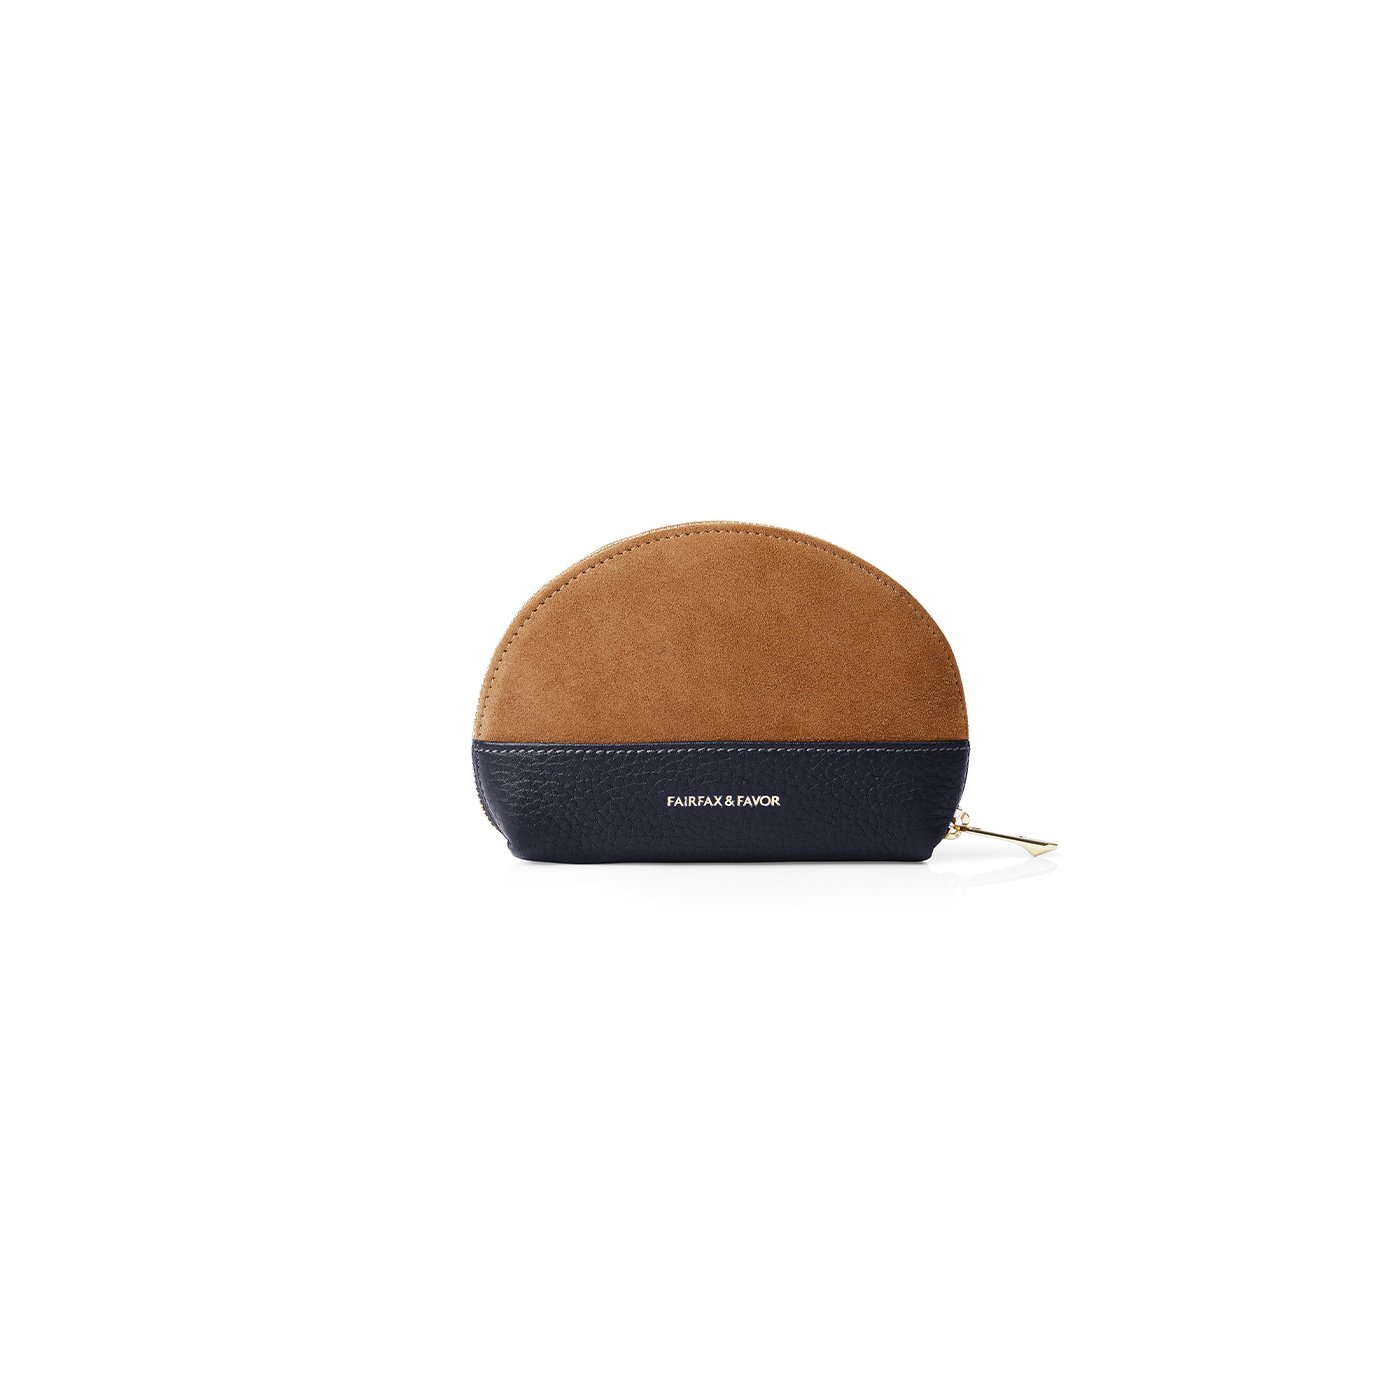 Fairfax & Favor – The Chiltern Coin Purse – Tan Suede/ Navy Leather